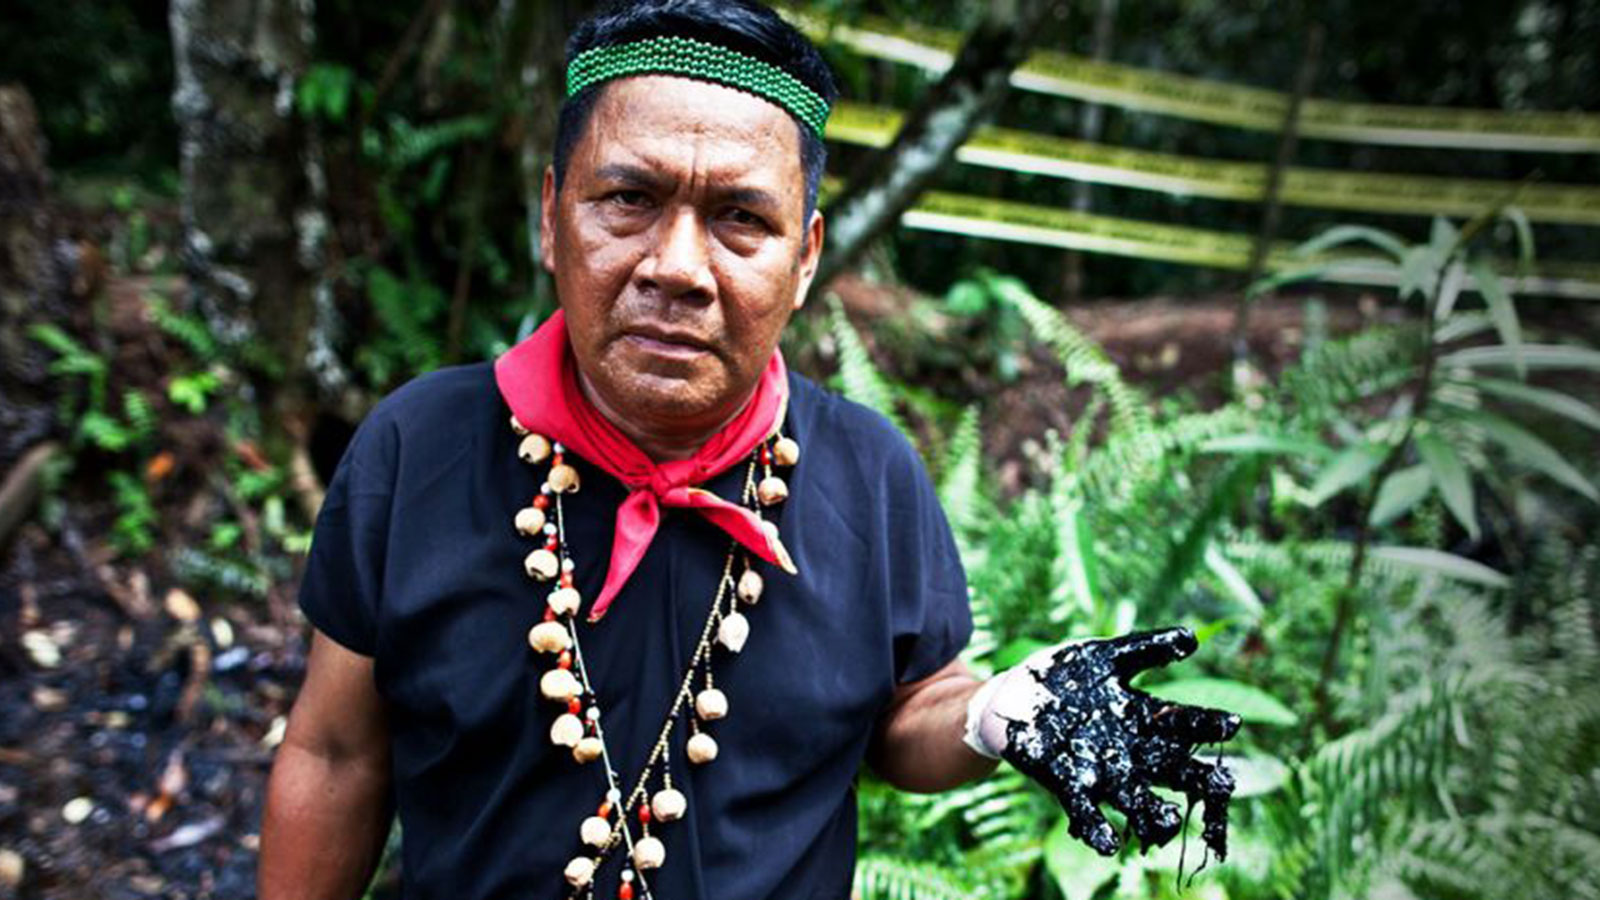 Amazonian man holds up hand full of oil.